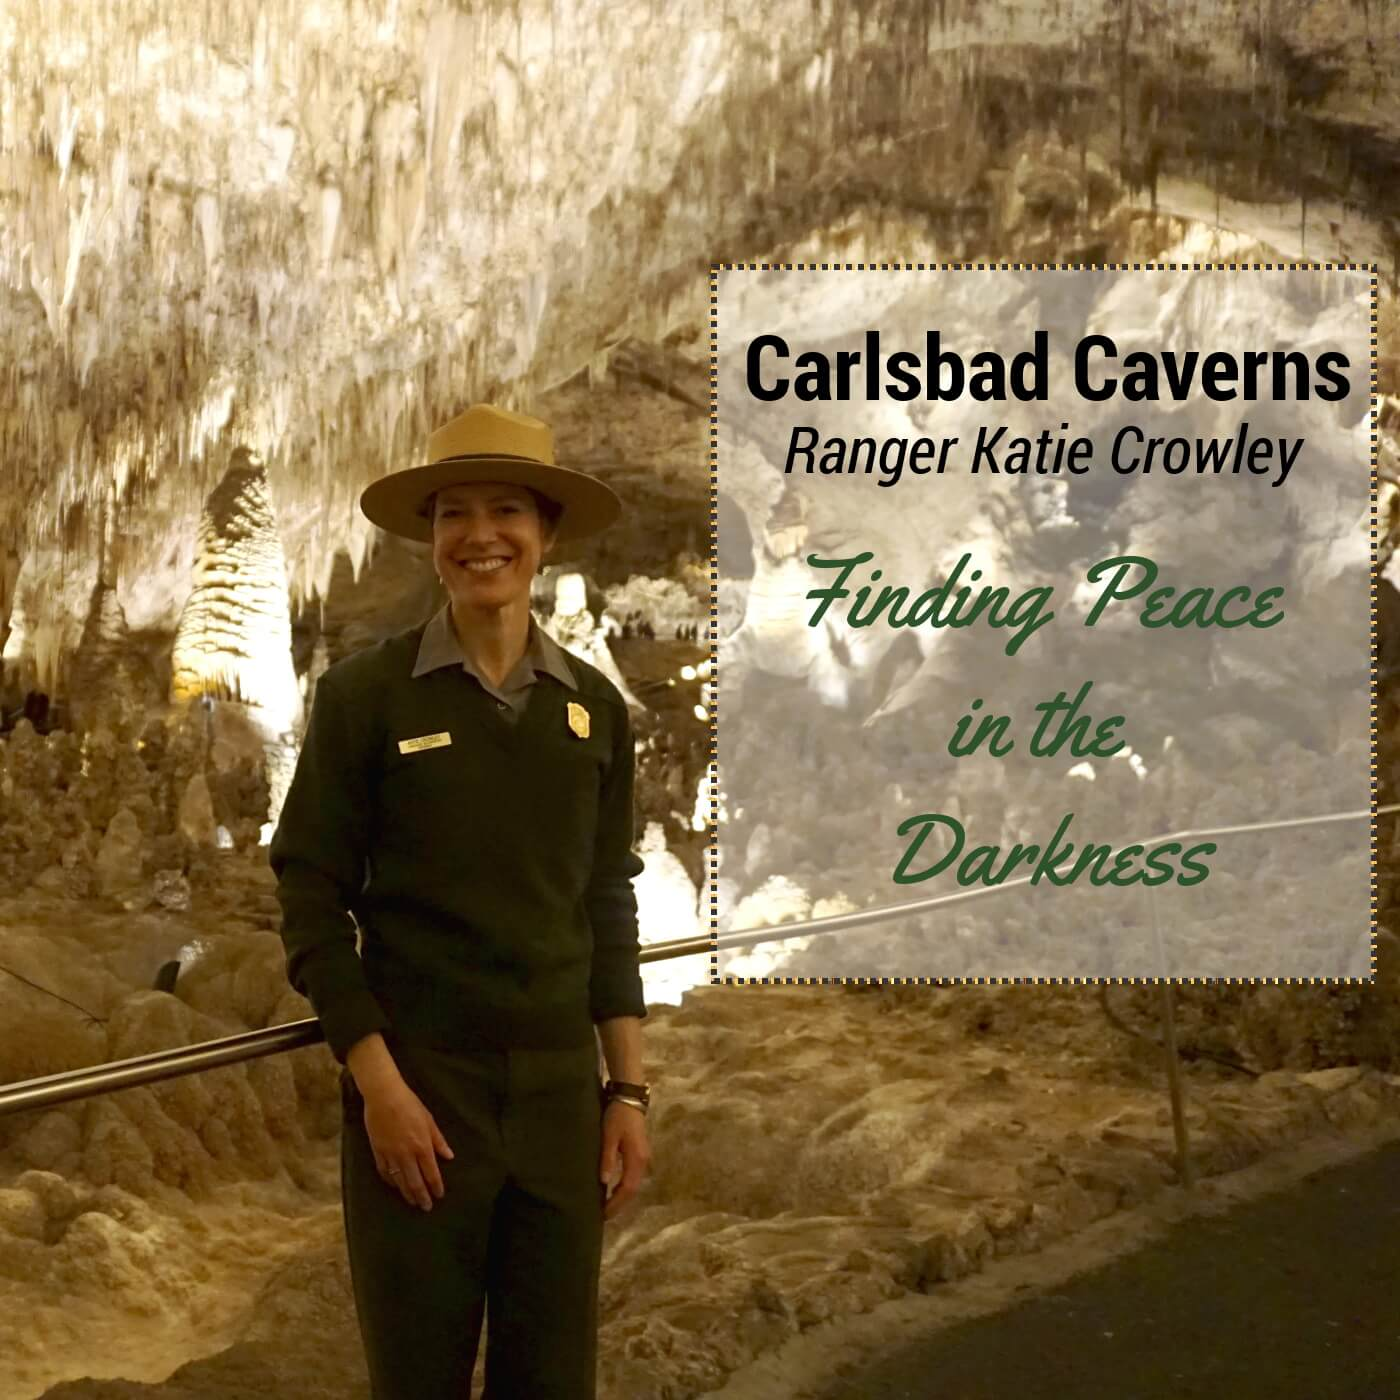 Carlsbad Caverns: Ranger Katie Crowley - Finding Peace in the Darkness